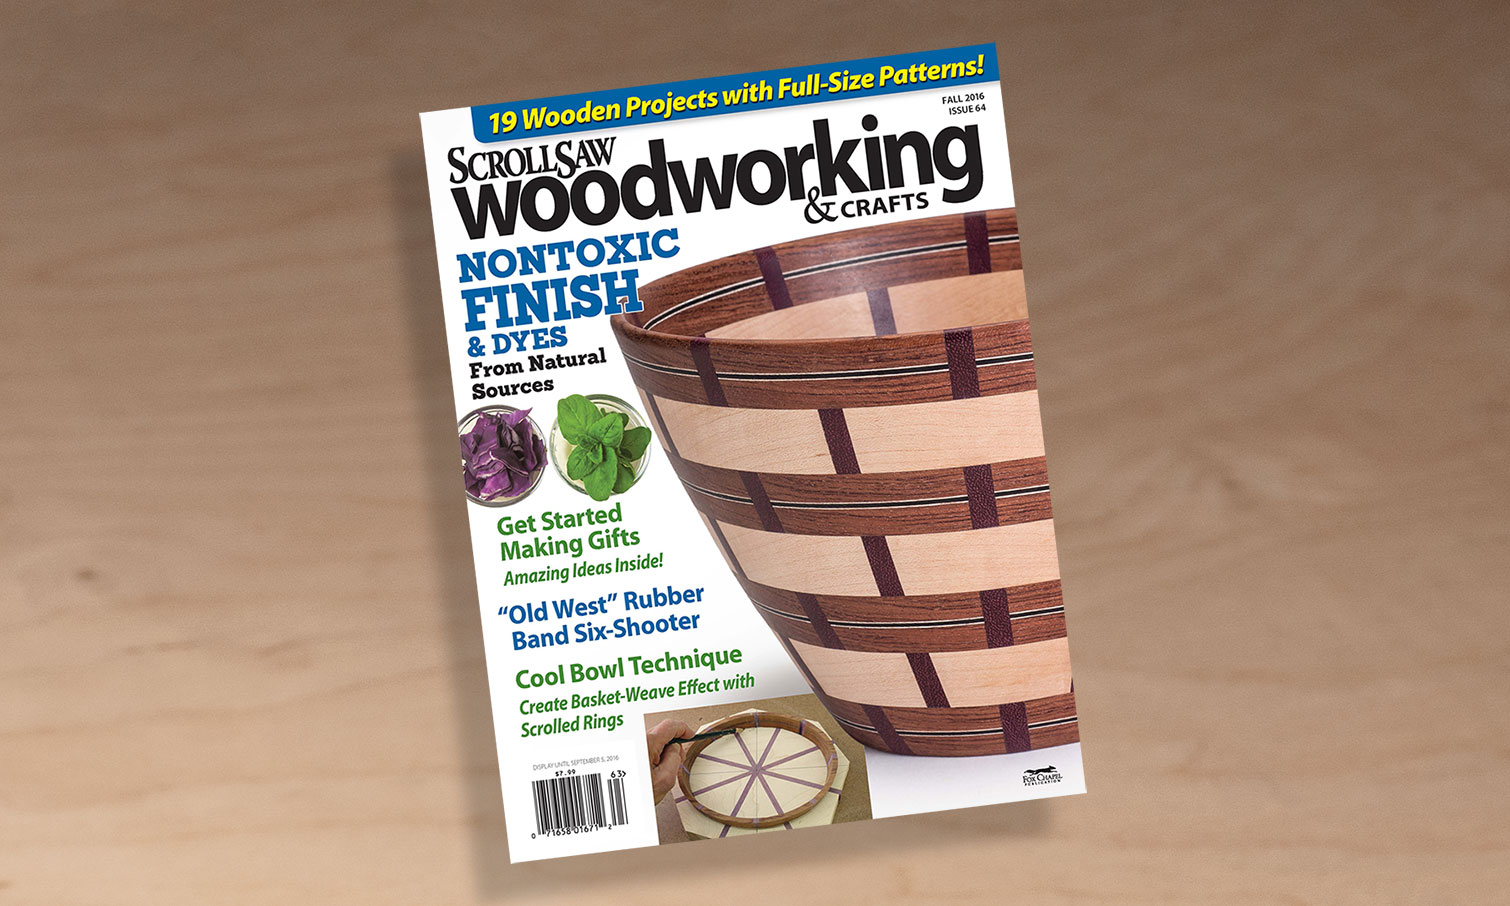 Scroll Saw Woodworking & Crafts Fall 2016: Issue 64